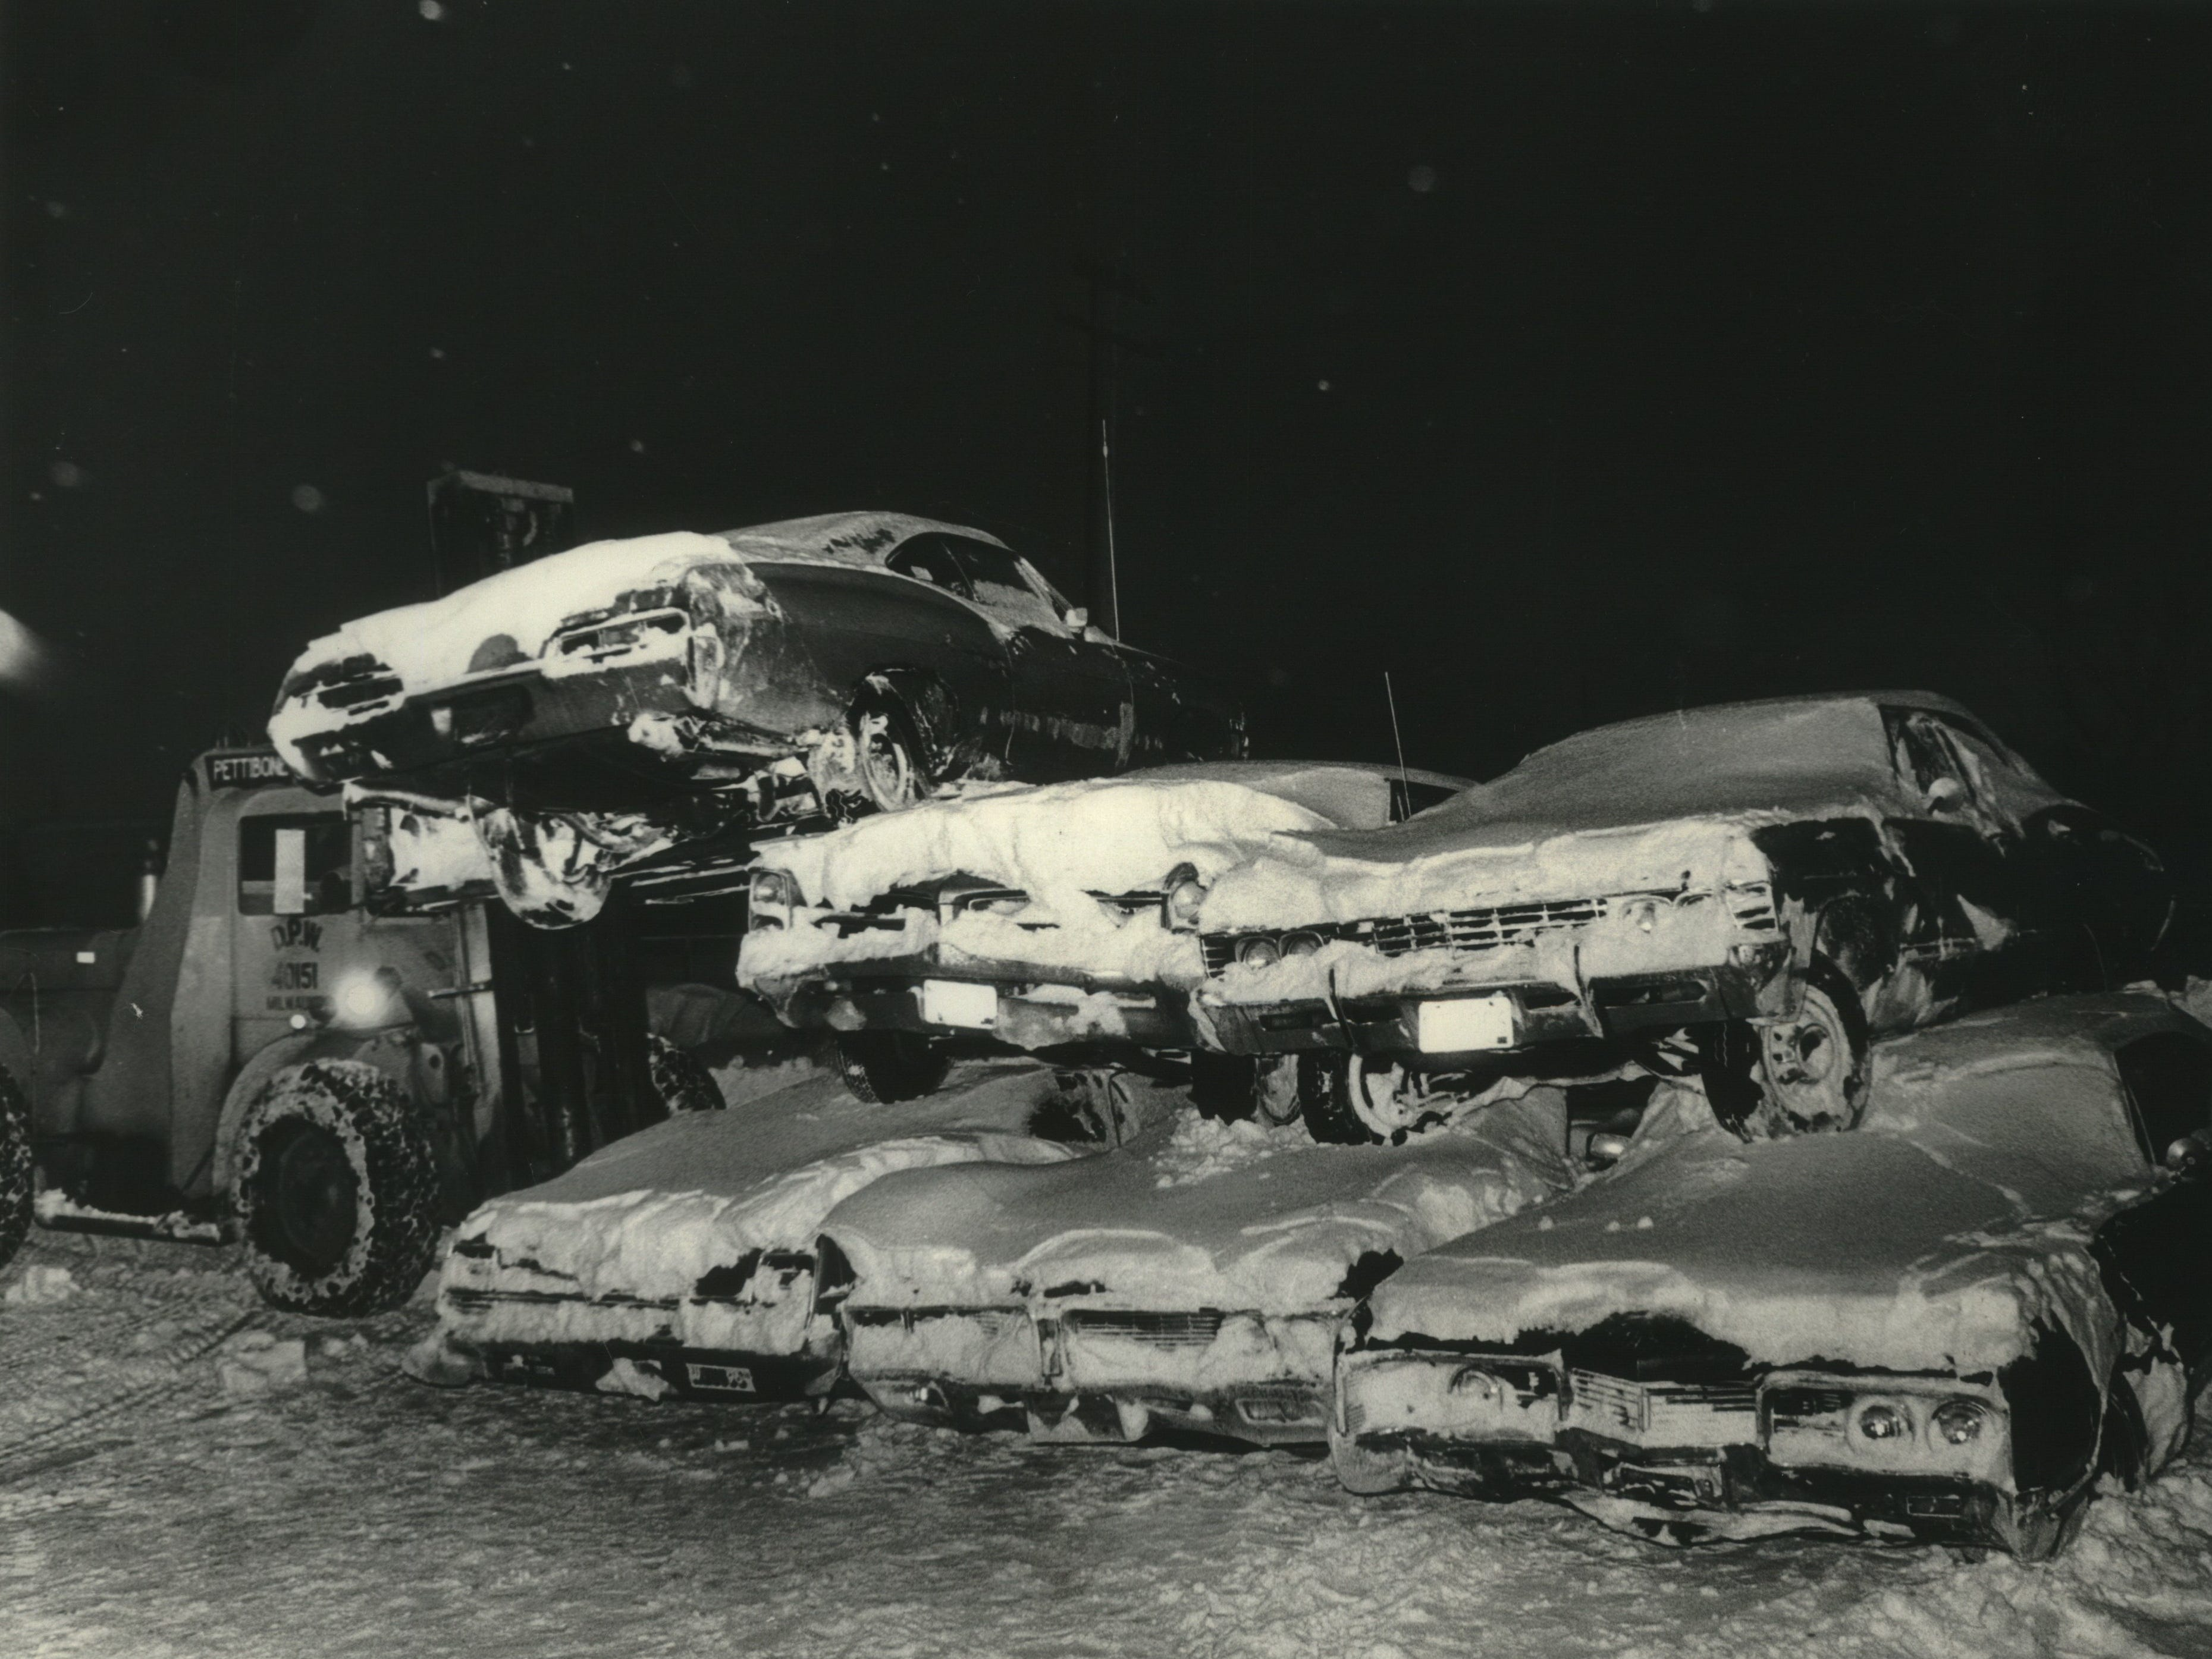 Cars keep on piling up on Jan. 19, 1979, in Milwaukee's Northwest Side storage lot, one of several sites in the city where vehicles abandoned during a blizzard were towed to try to clear Milwaukee's snow-clogged streets. Donald D. Roethig, assistant commissioner of public works, ordered the car-stacking. This photo was published in the Jan. 20, 1979, Milwaukee Journal.